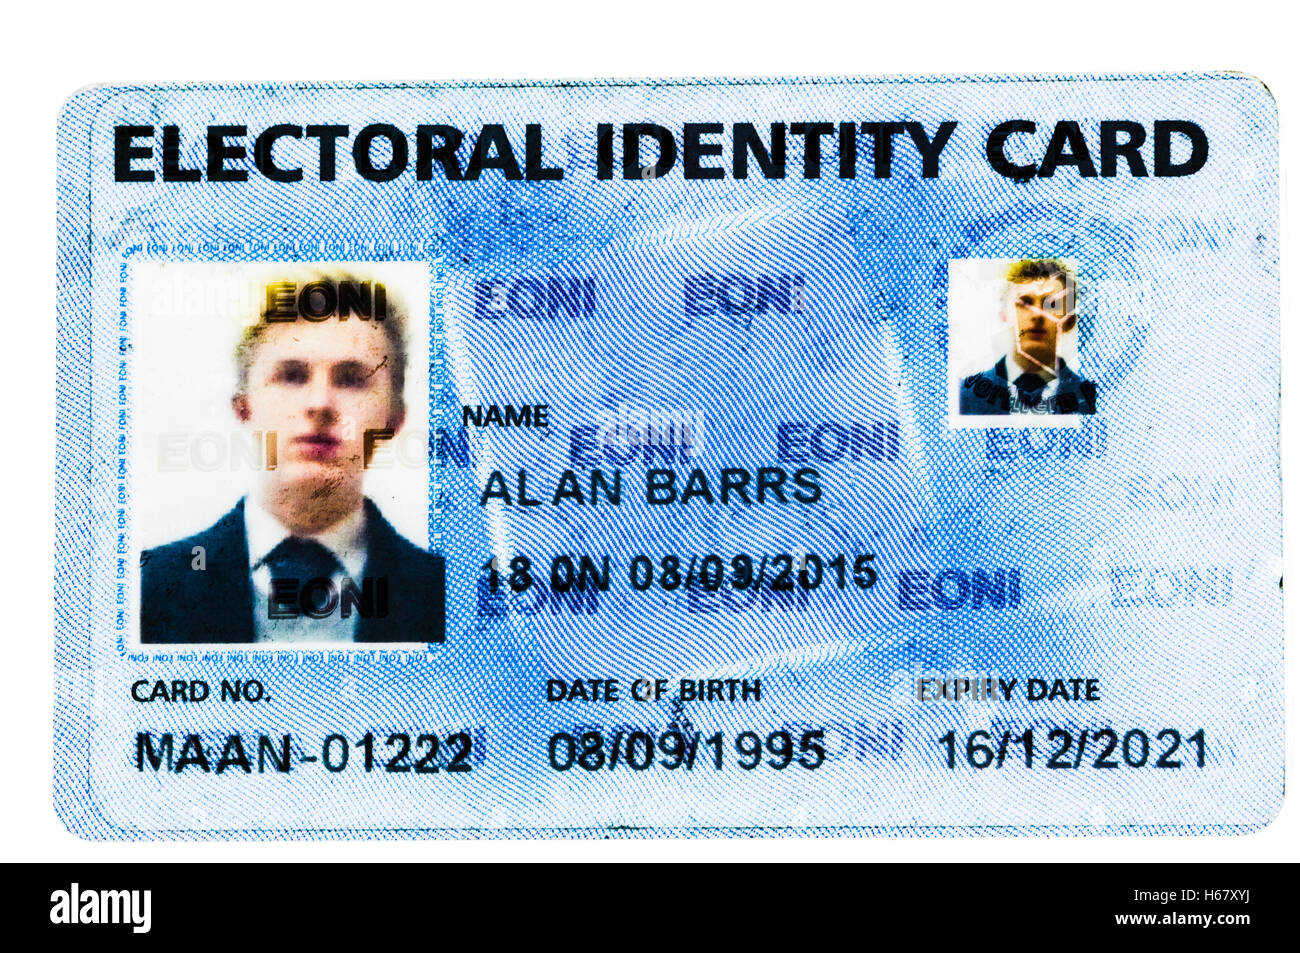 Electoral Identify Card from EONI, Northern Ireland Stock